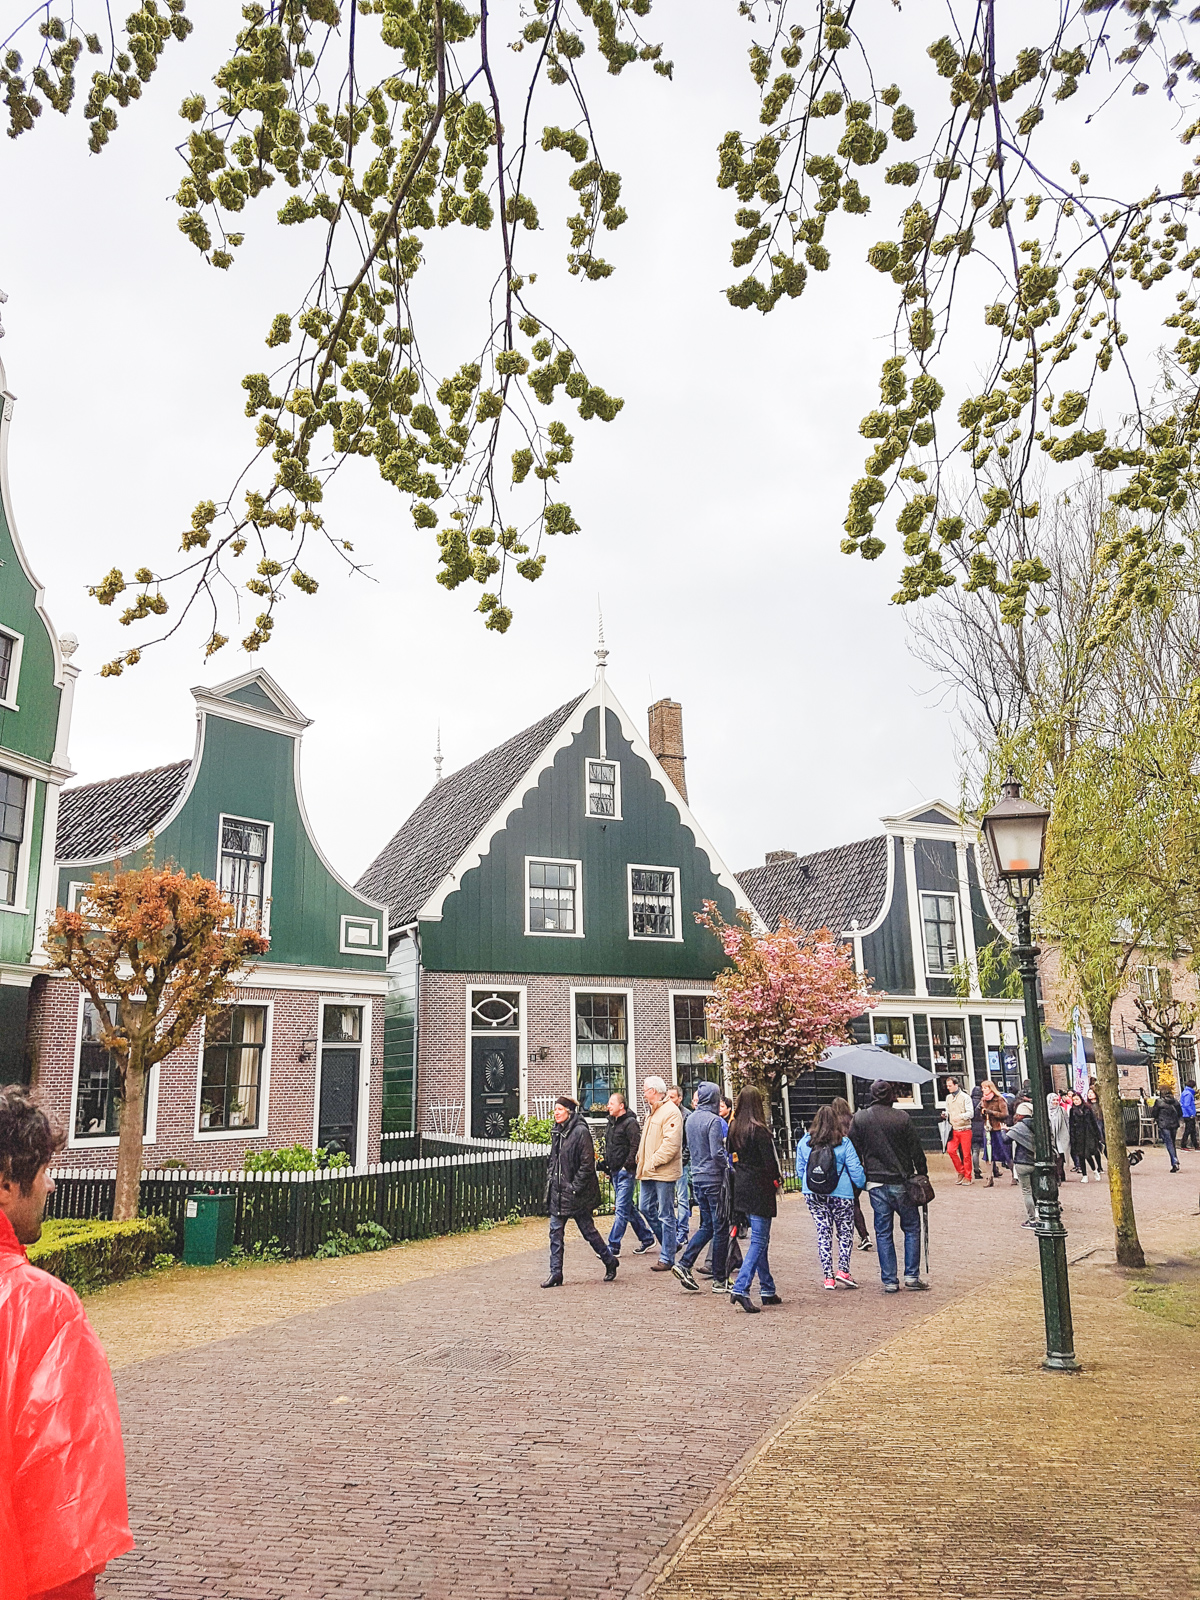 Houses at Zaanse Schans, Holland, The Netherlands